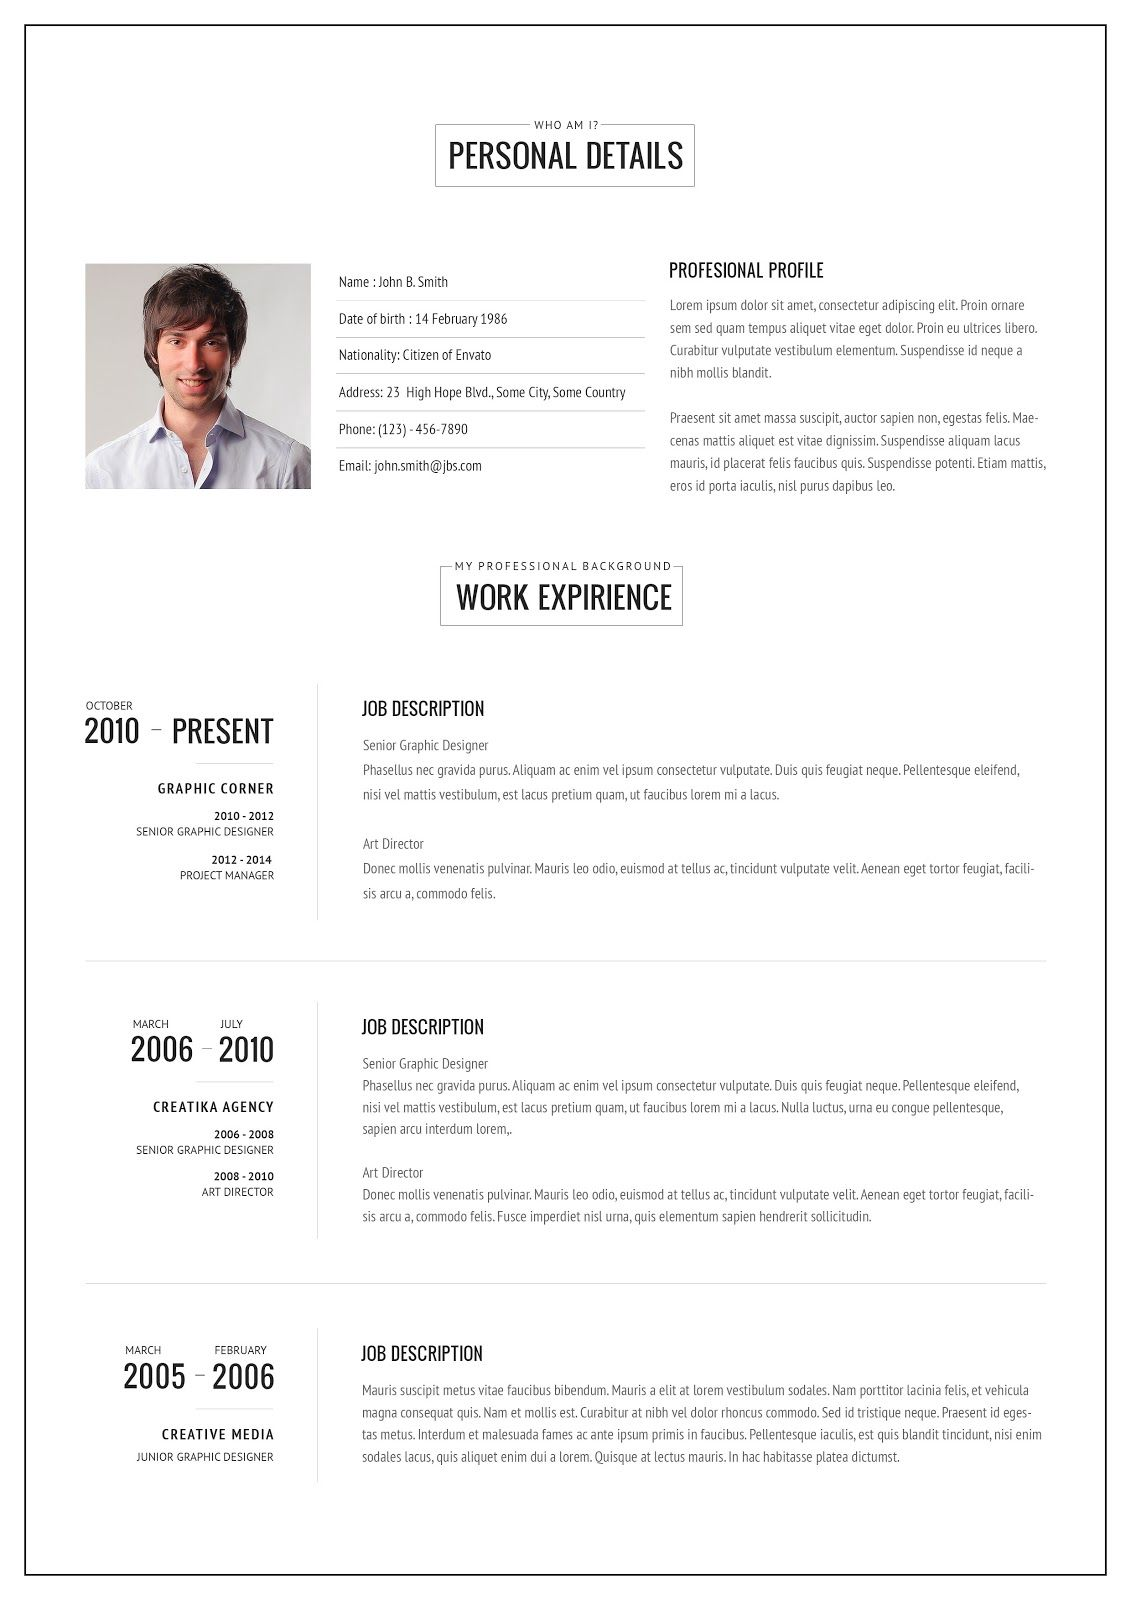 Resume Templates and Its Importance Free online resume